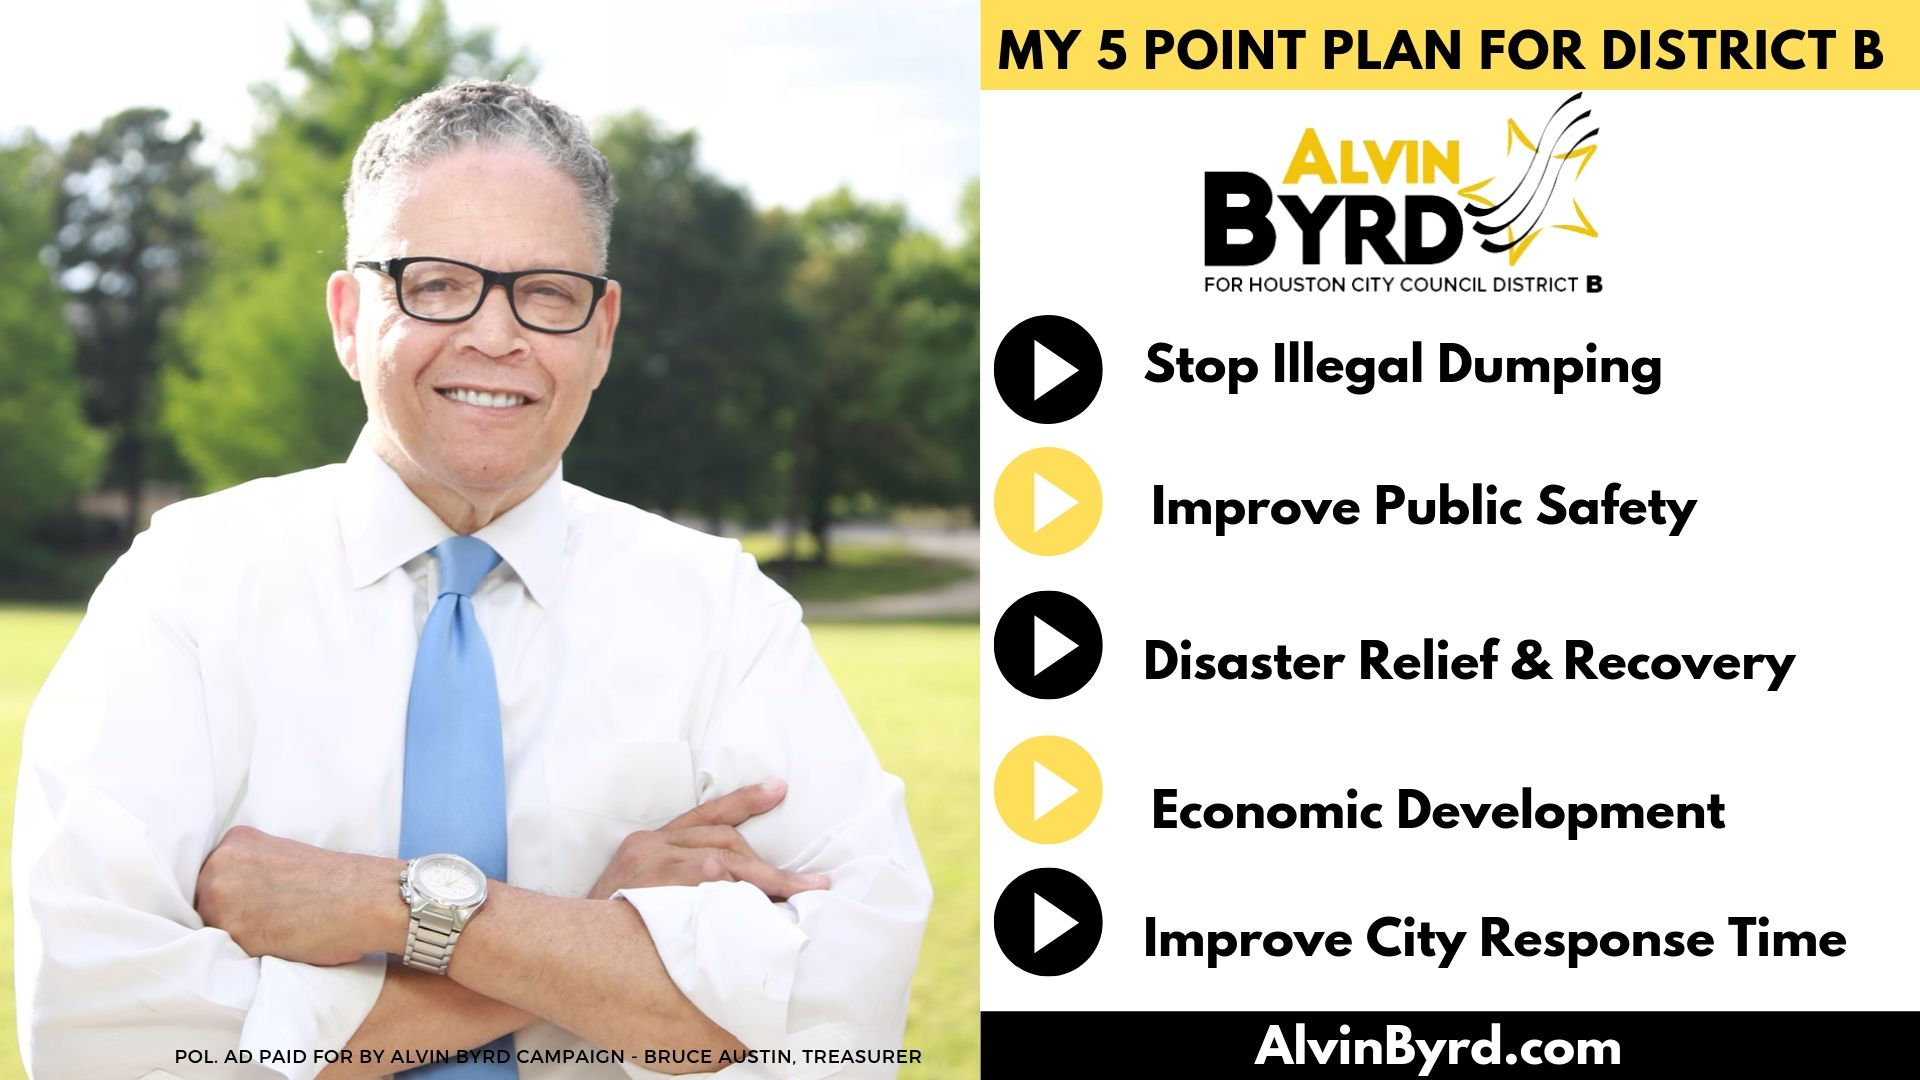 Byrd 5 Point PLan.jpg